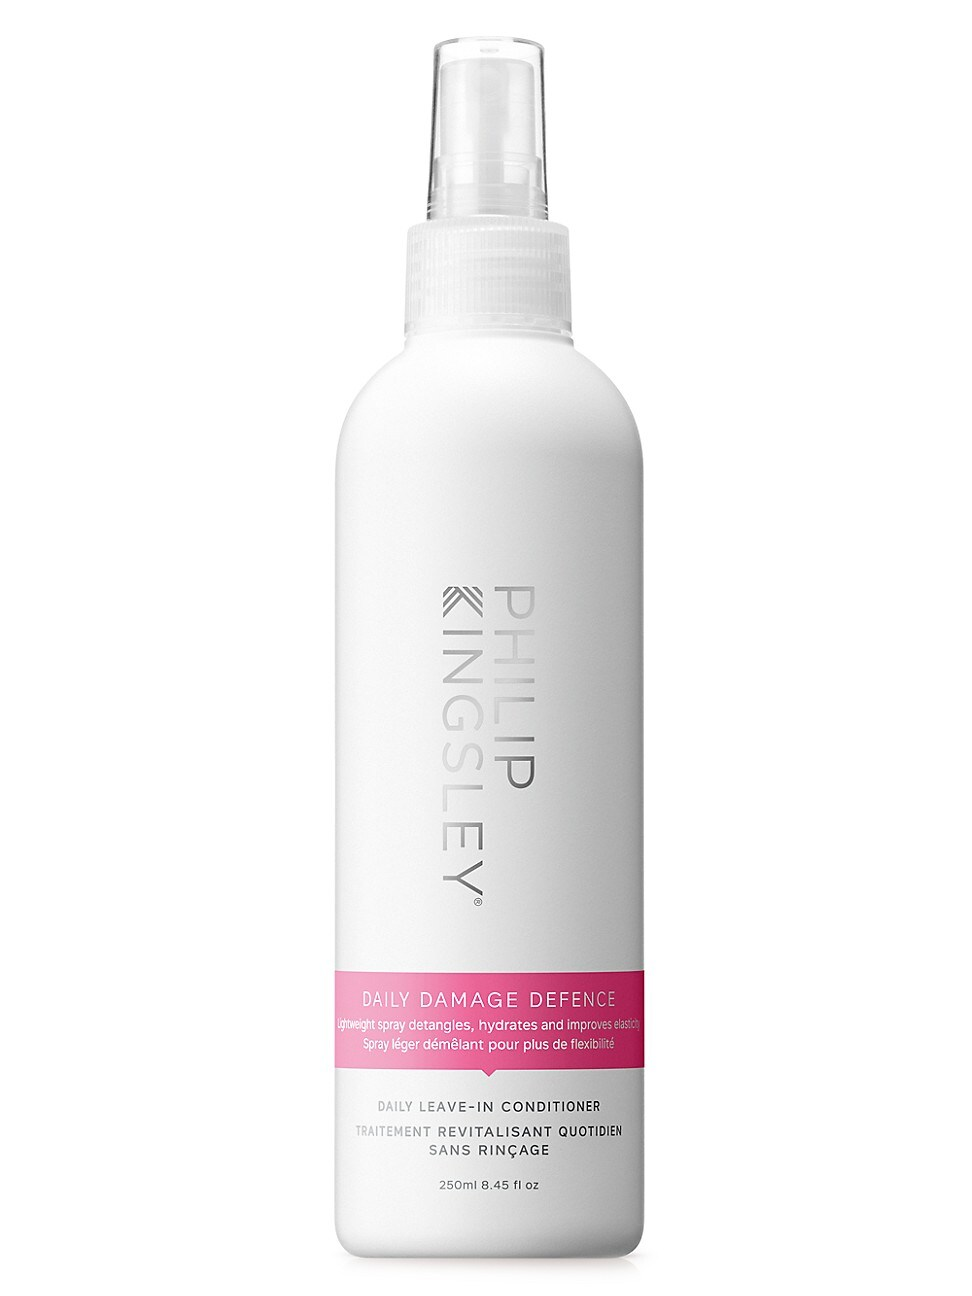 Philip Kingsley Daily Damage Defence Daily Leave-in-conditioner